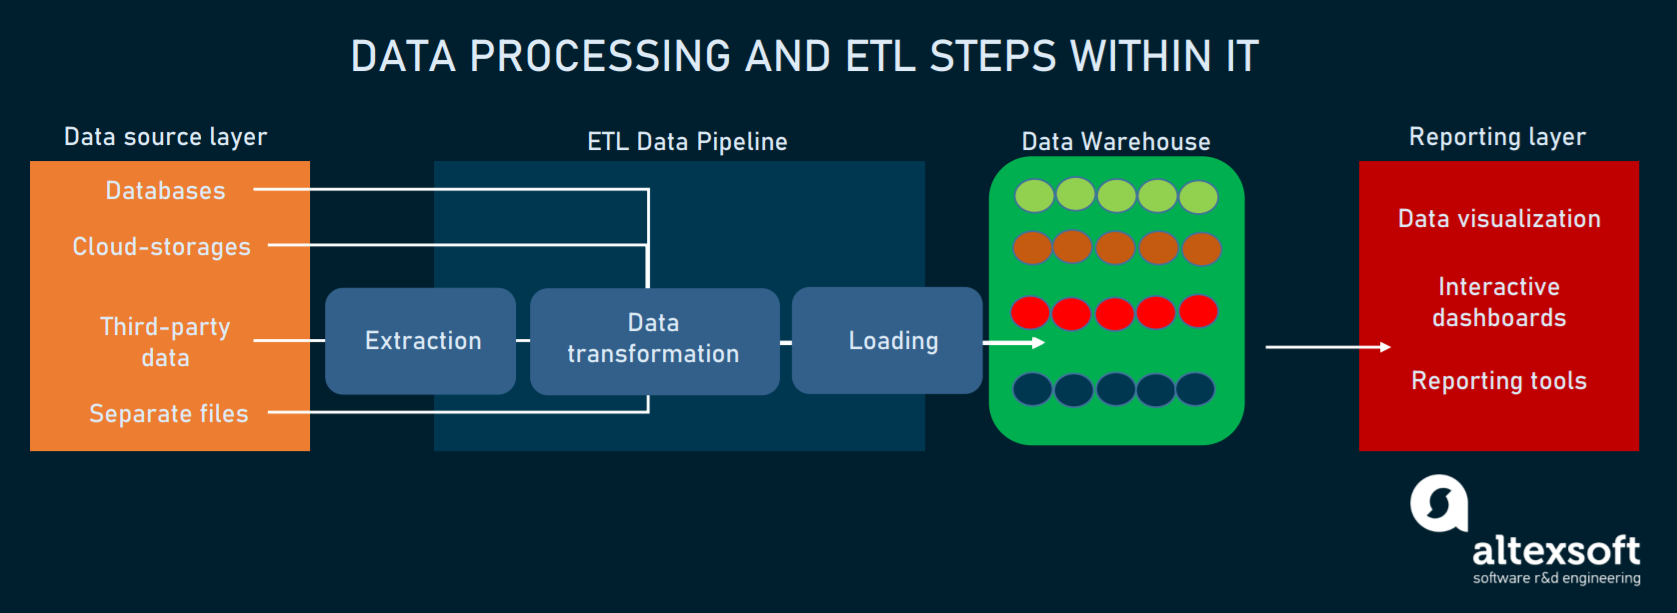 Data processing within ETL pipeline and warehouse